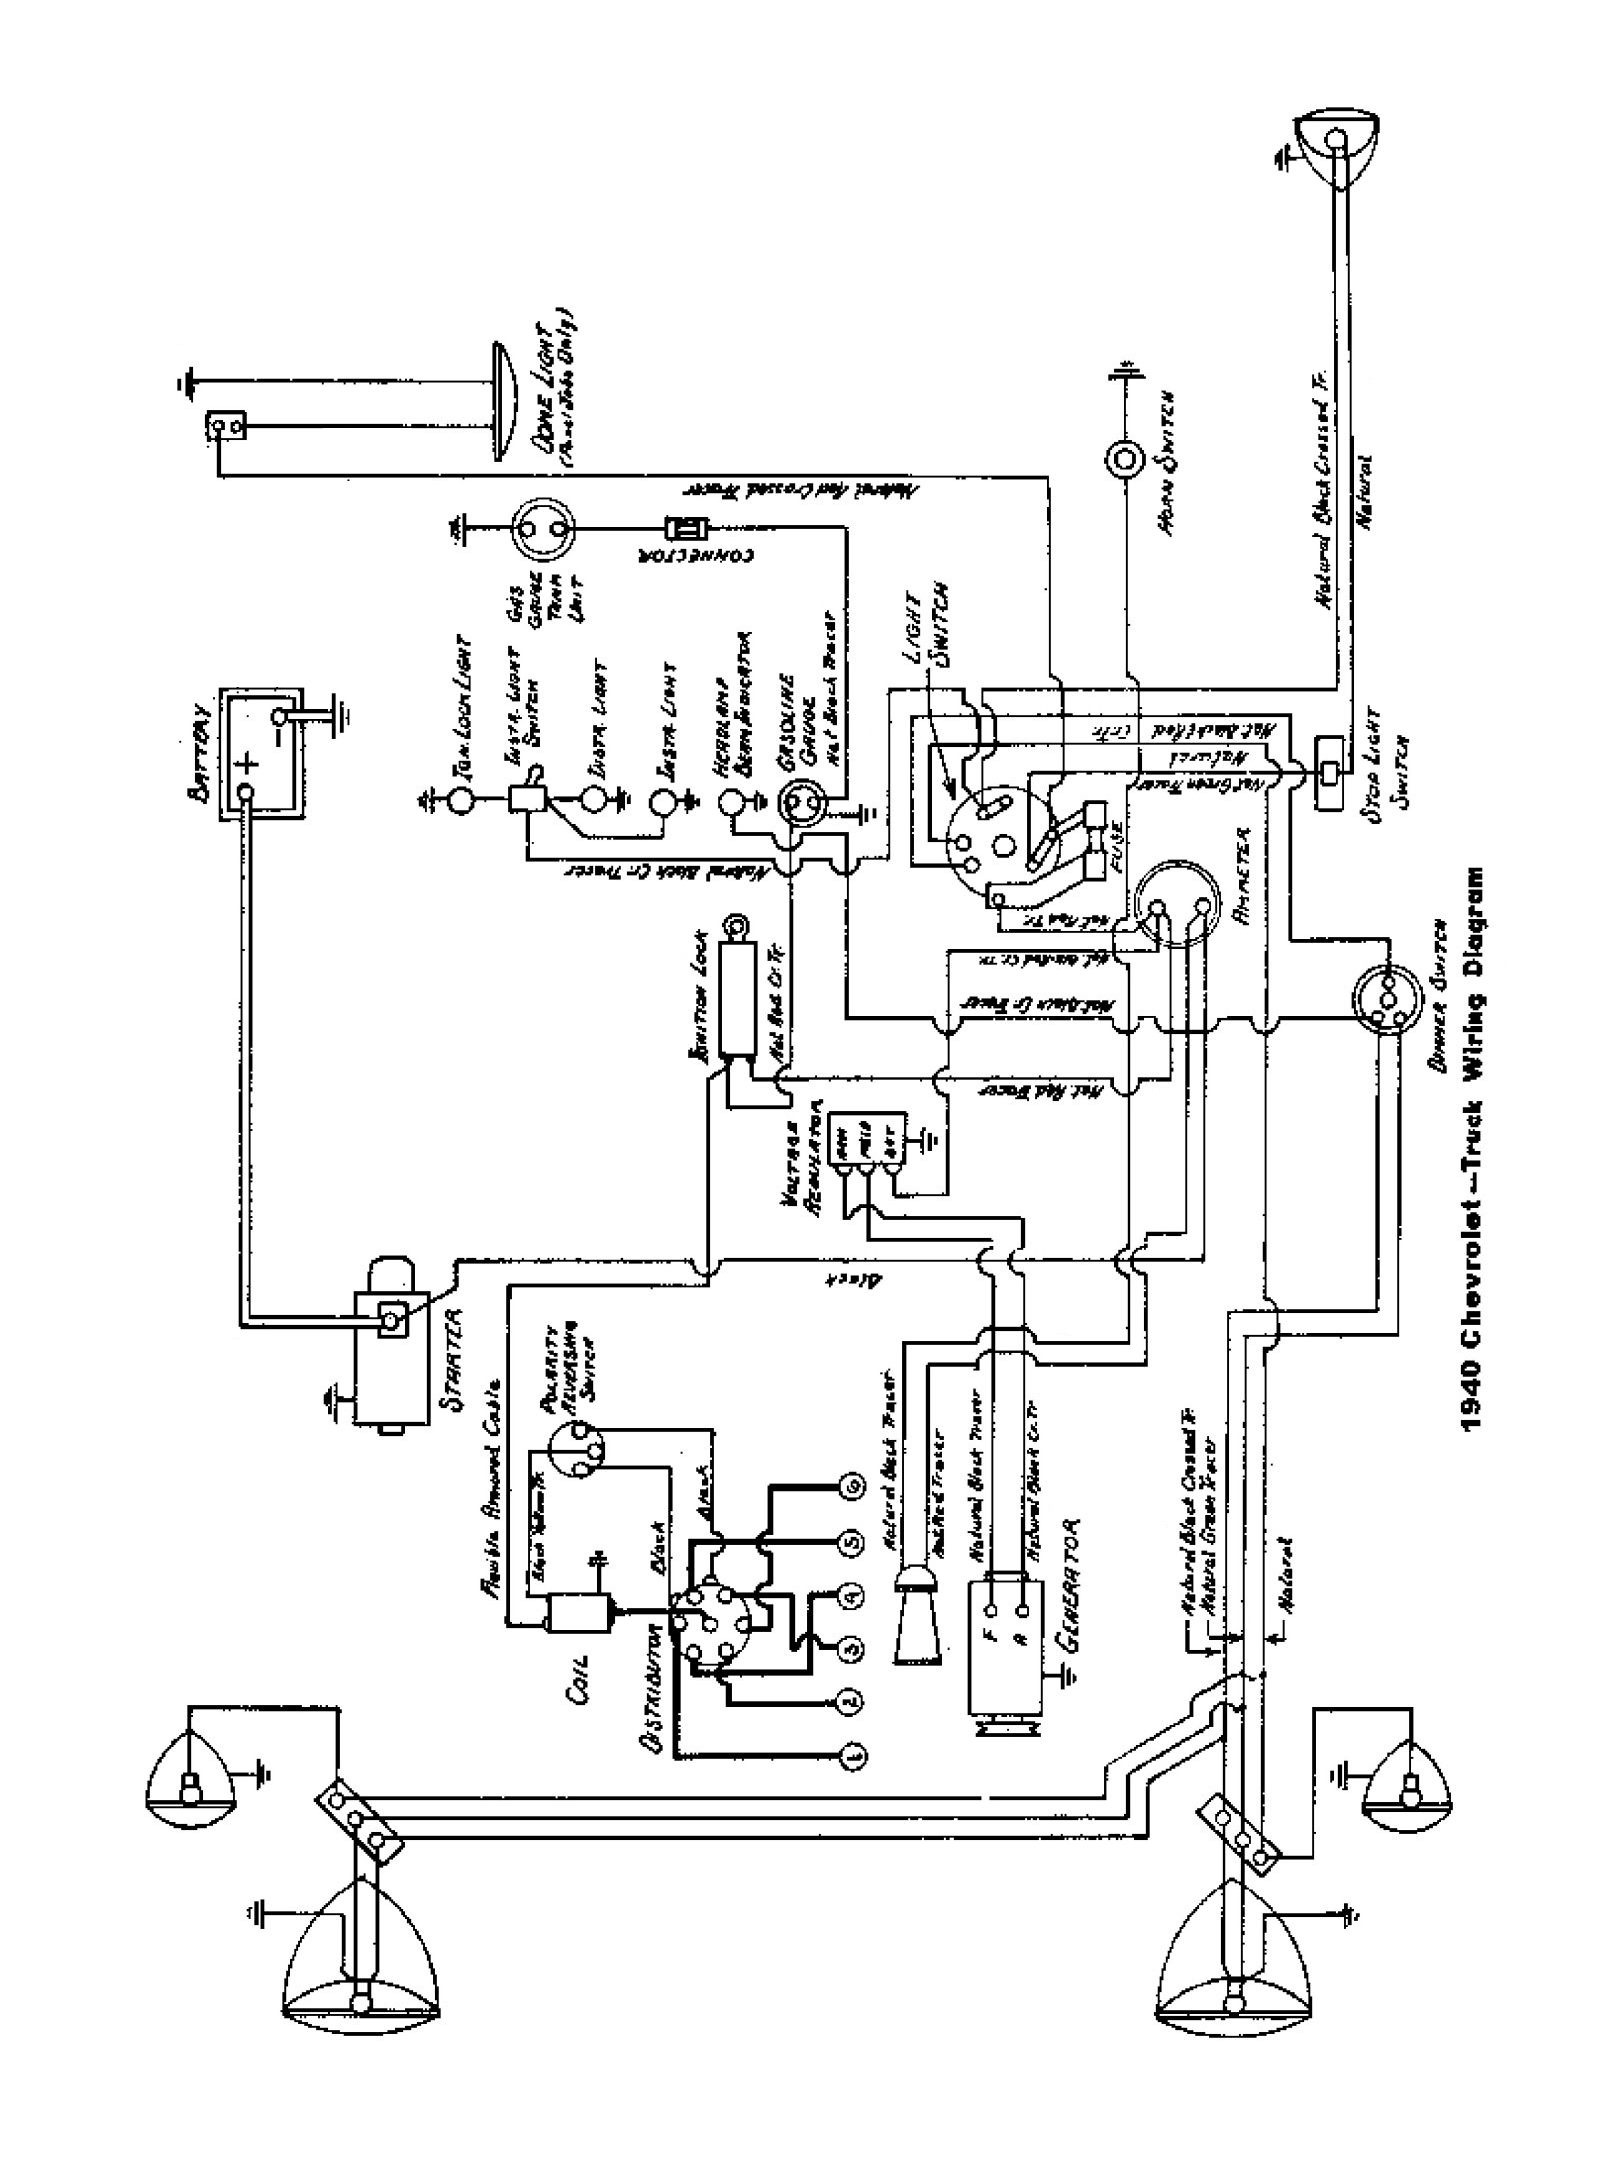 1961 chevy impala wiring diagram wiring diagrams rh briefy co wiring diagram for chevy vega wiring diagram for chevy hei distributor